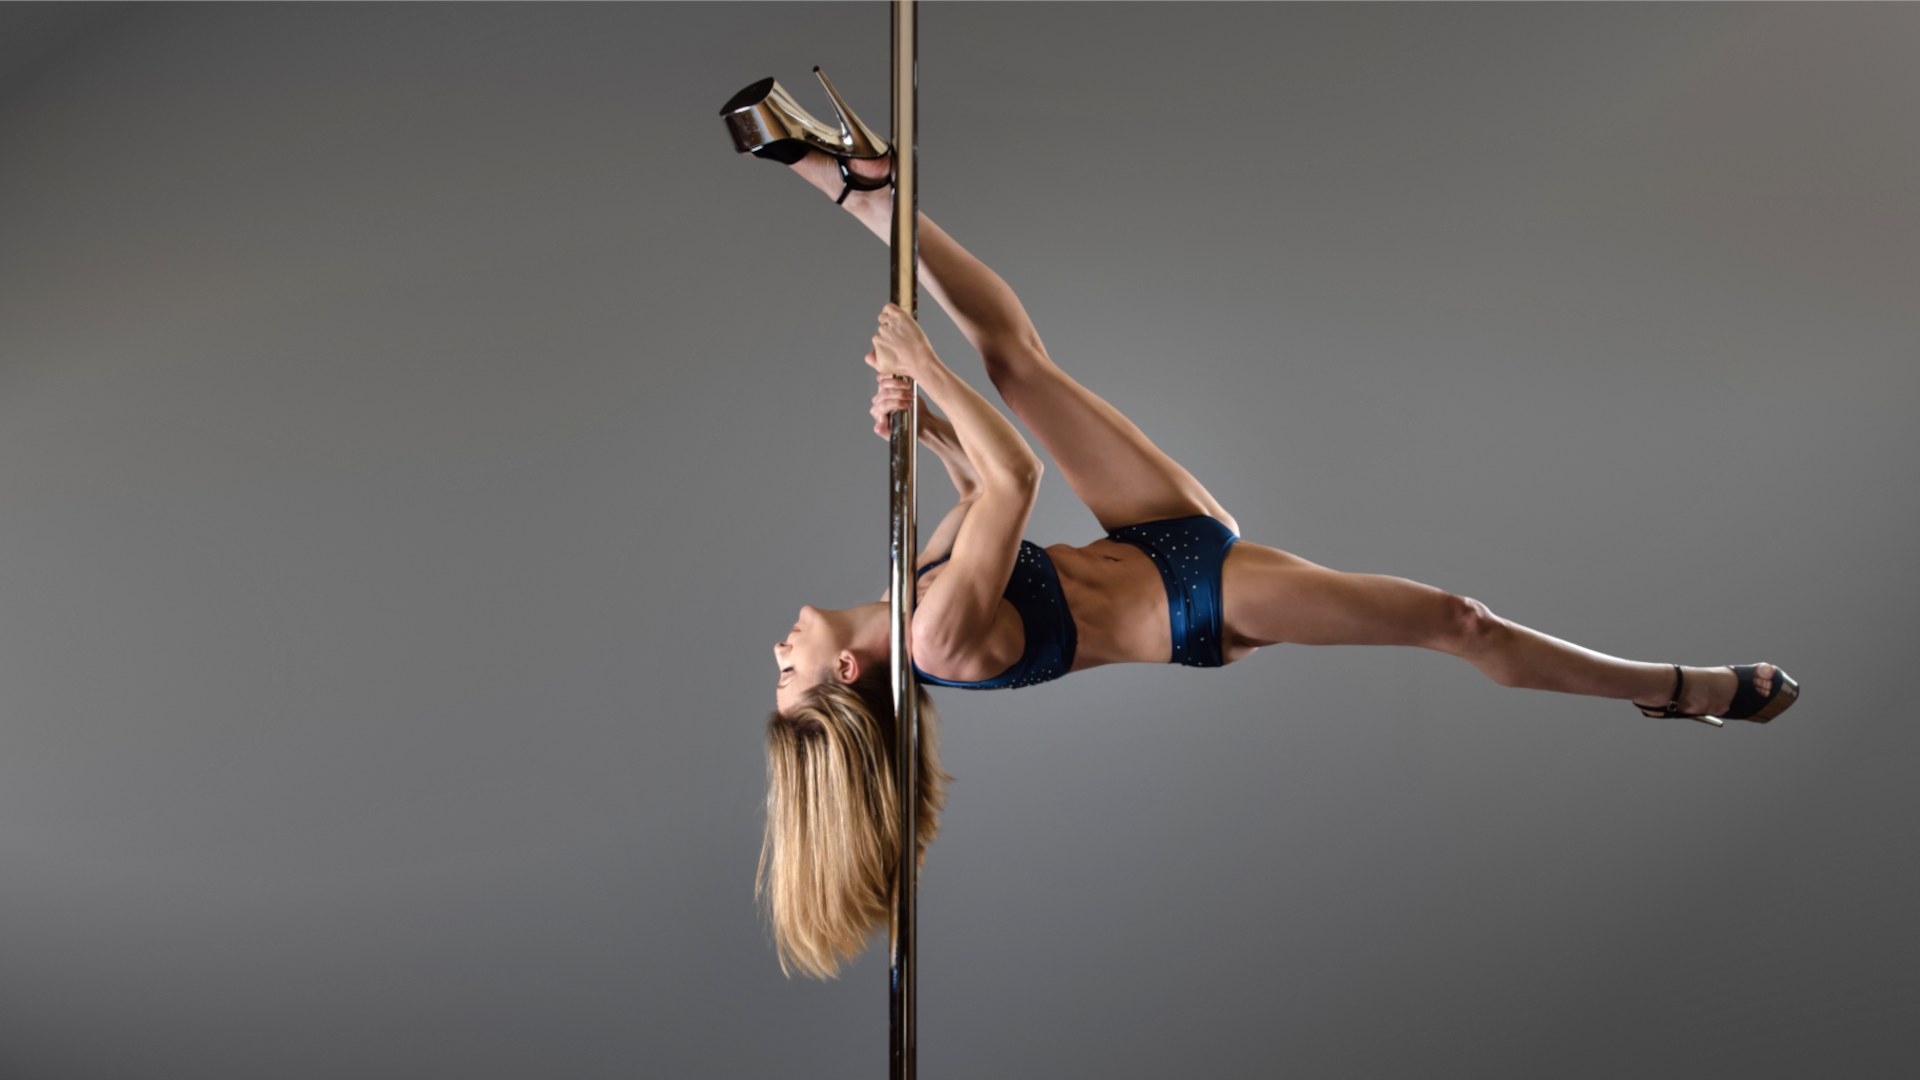 sarah myers pole school owner